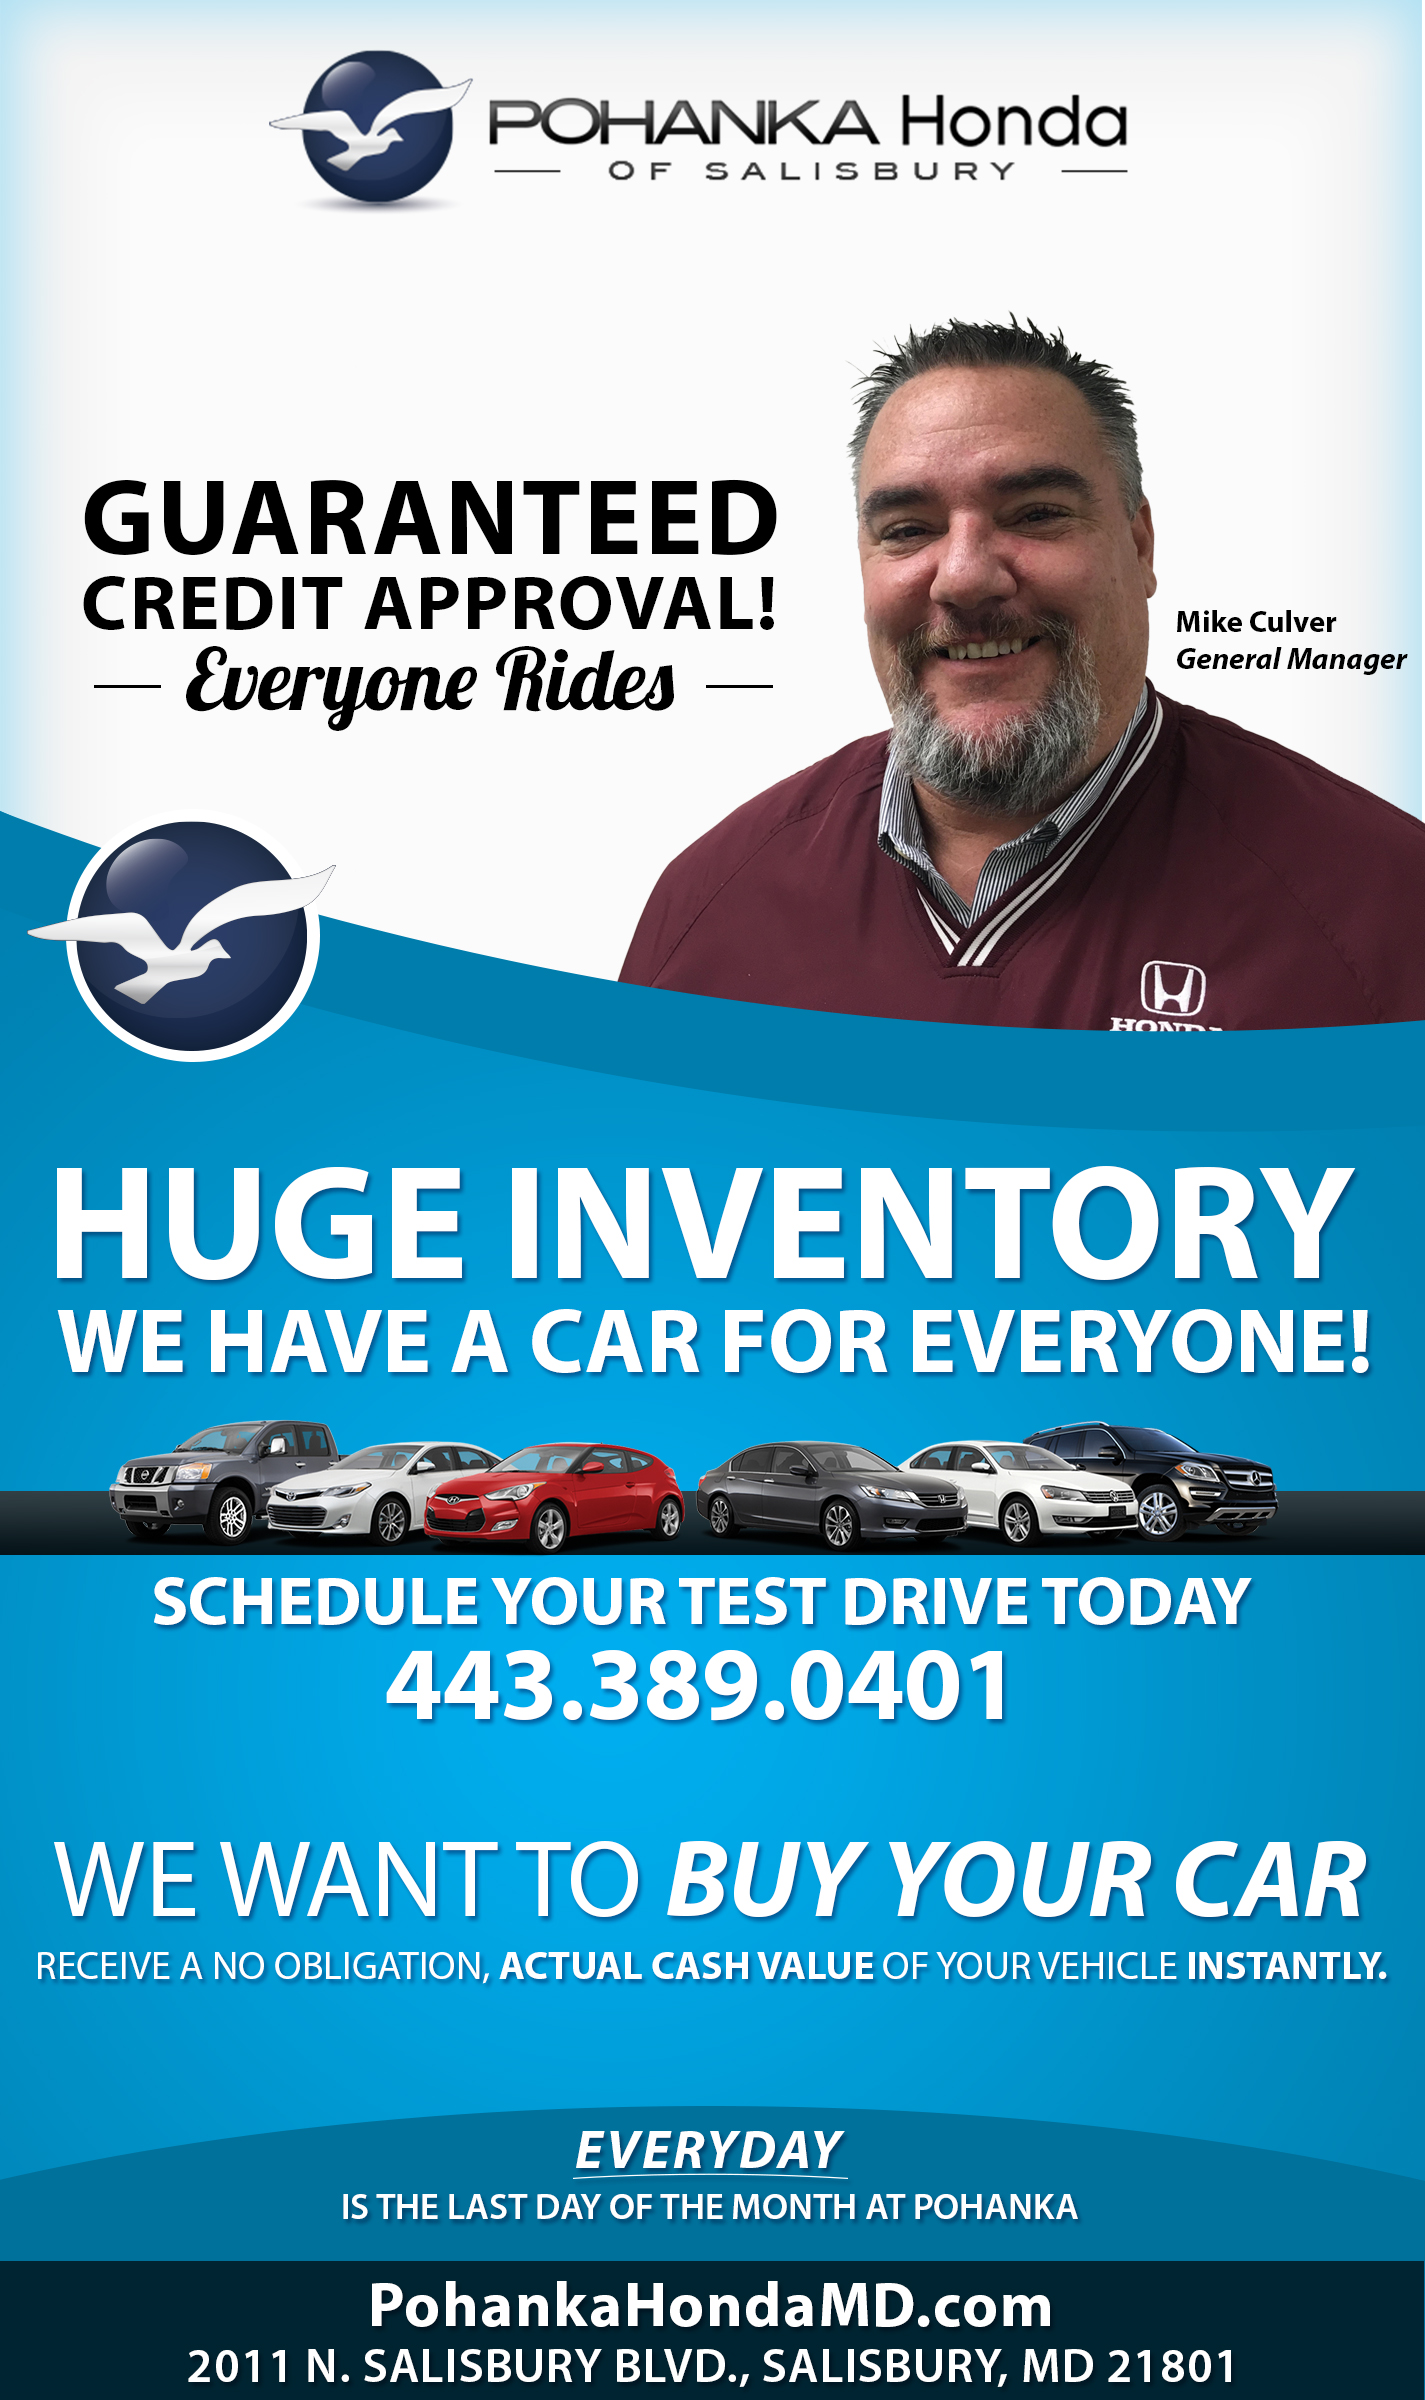 Mike Culver Used Cars Mar 17 The Guide Ad.jpg